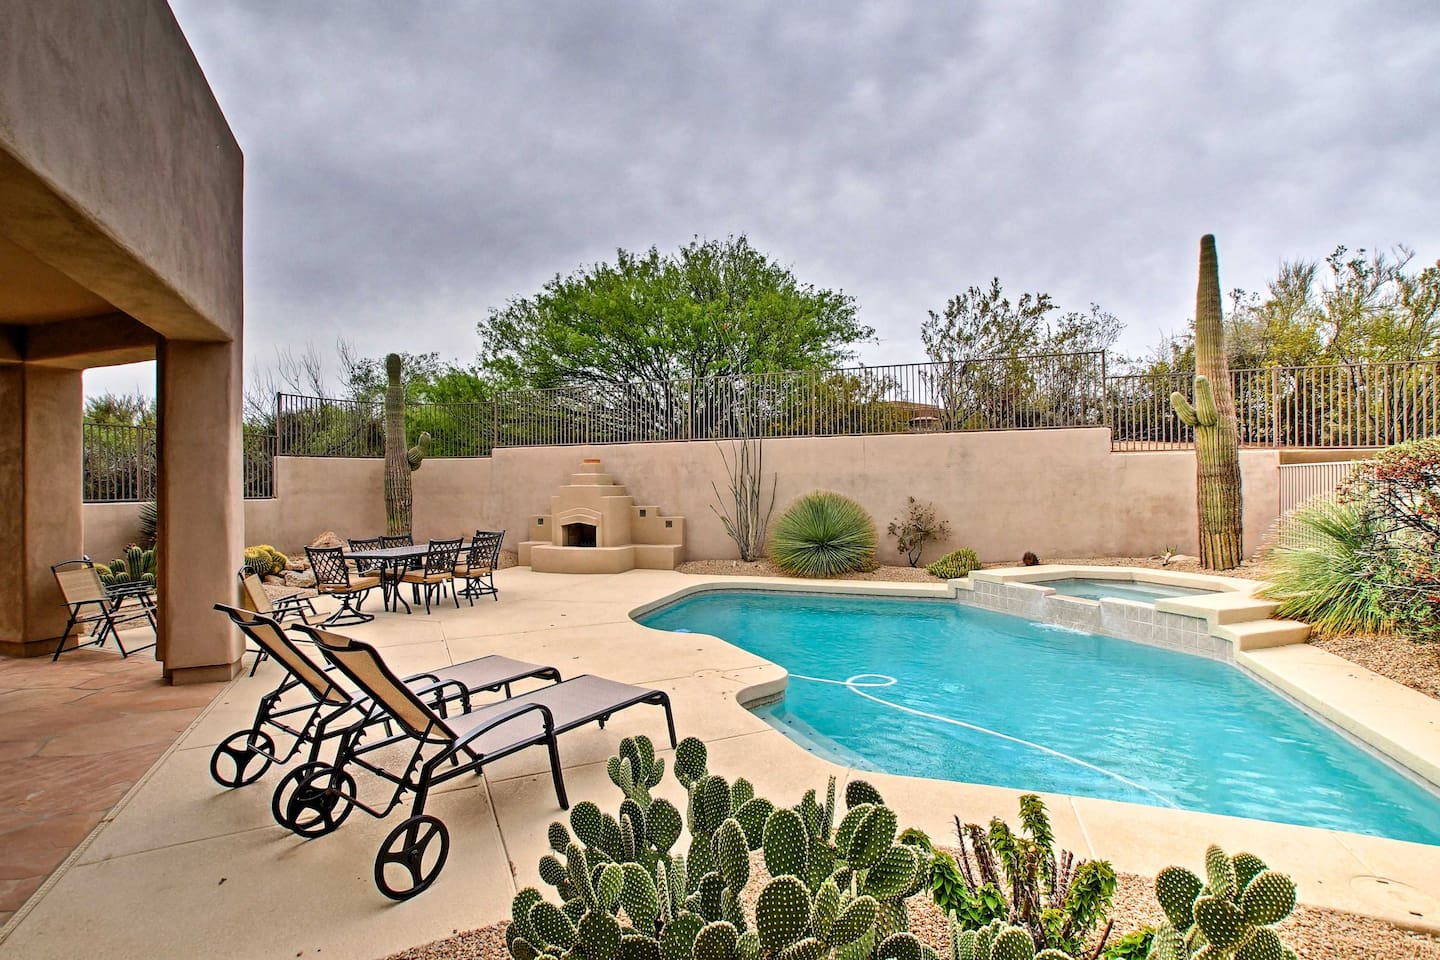 Escape to this vacation rental in Scottsdale for optimal holiday relaxation!